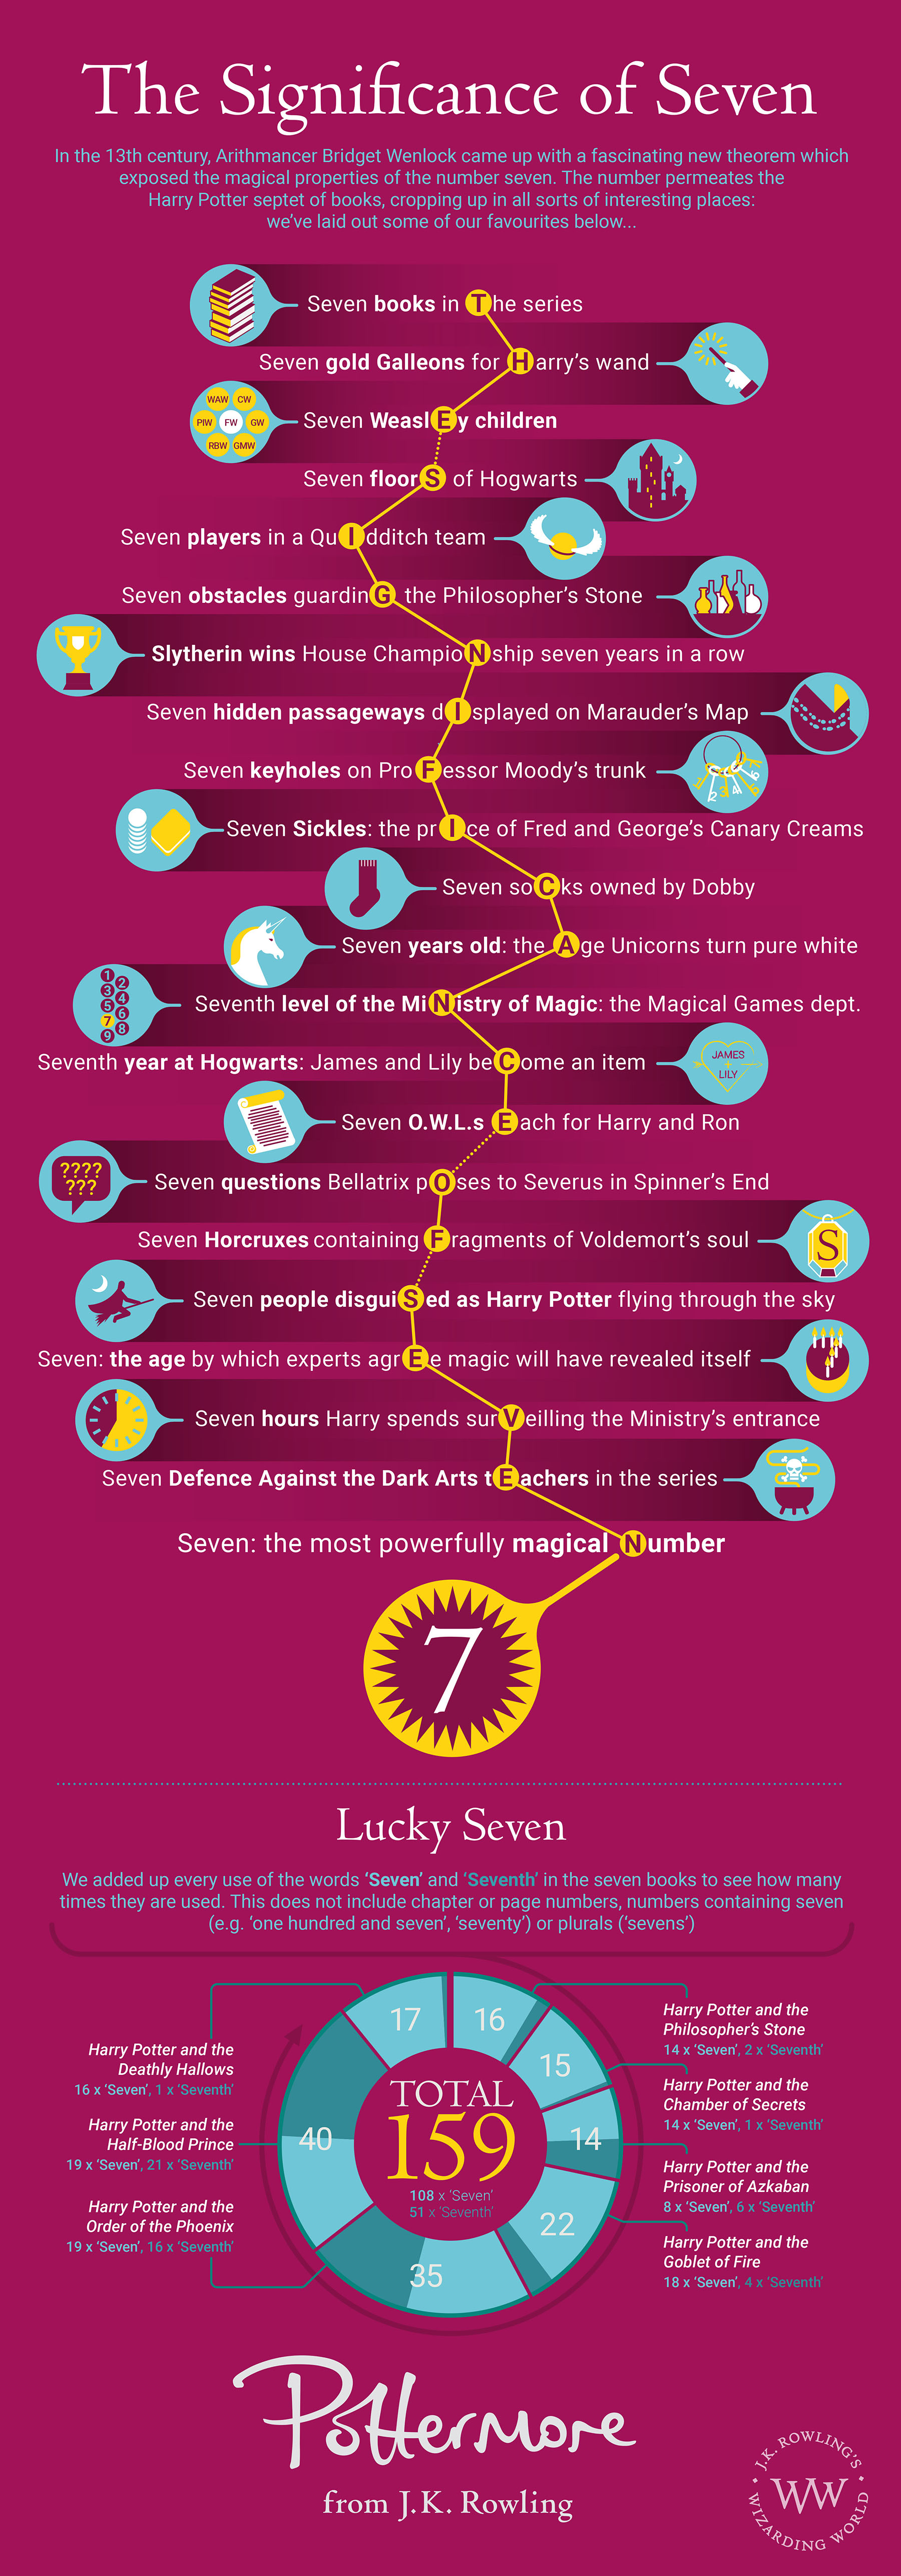 The Significance Of Seven Pottermore